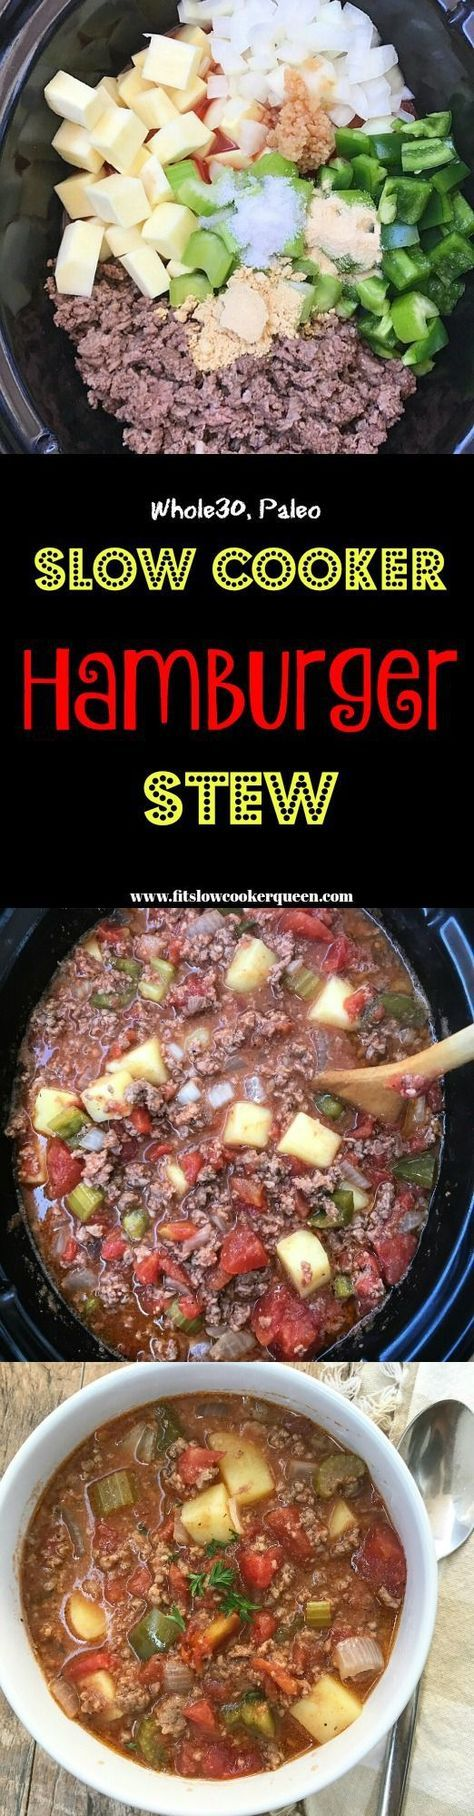 Hamburger flavors in a stew! Not just any stew, a healthy whole 30 compliant and paleo stew that cooks in your slow cooker in just a couple of hours.